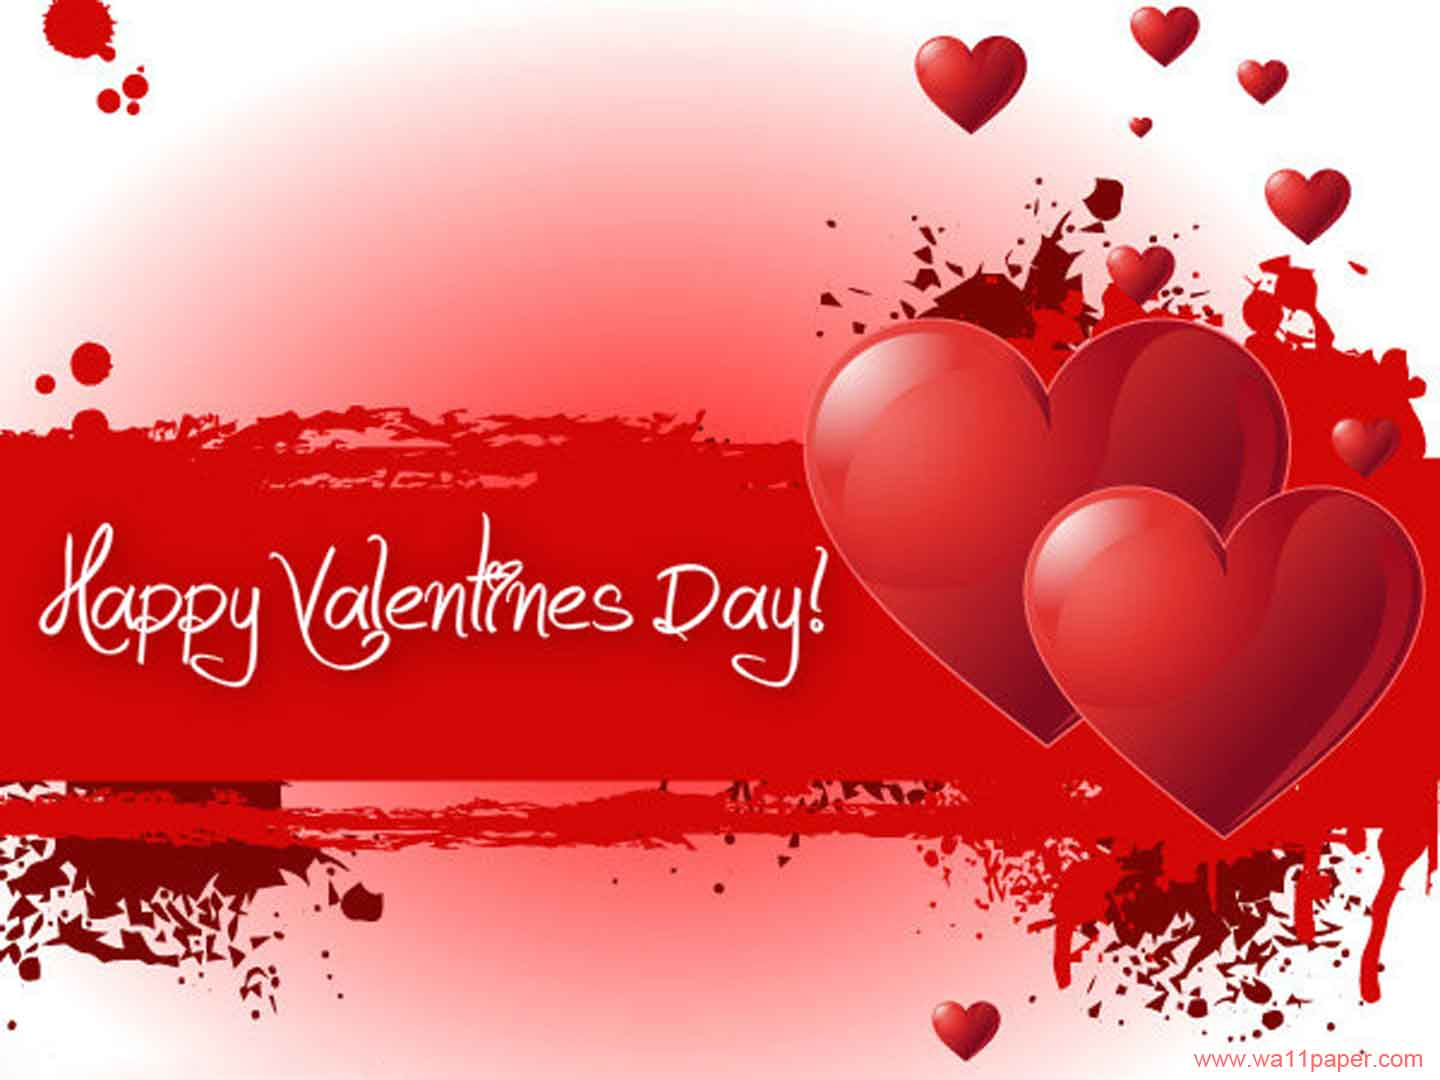 Happy-Valentines-Day-Red-Greeting-Card.j